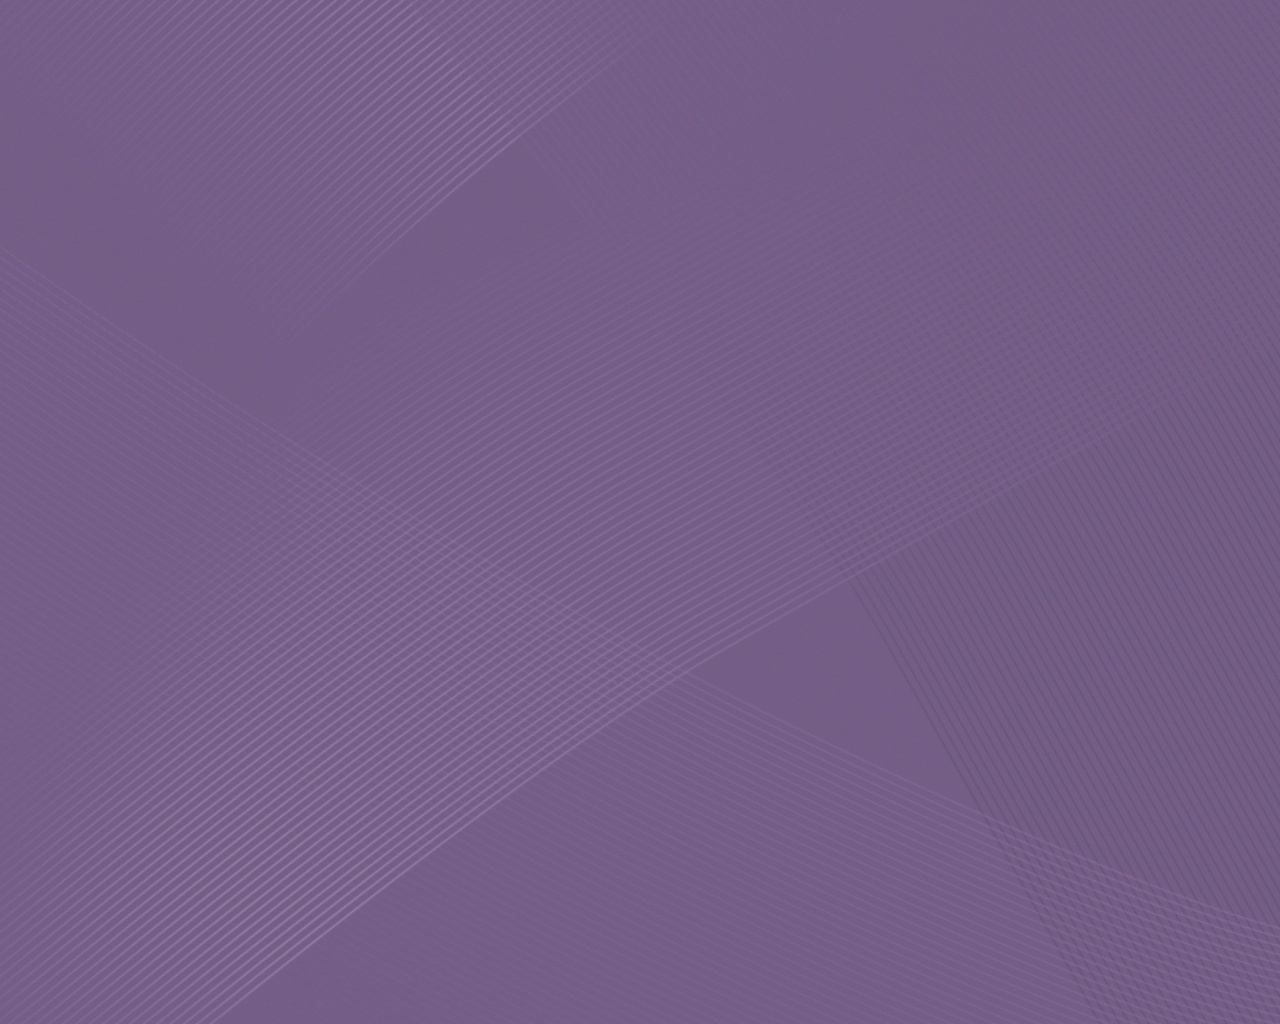 1280x1024 Simple Plum Background